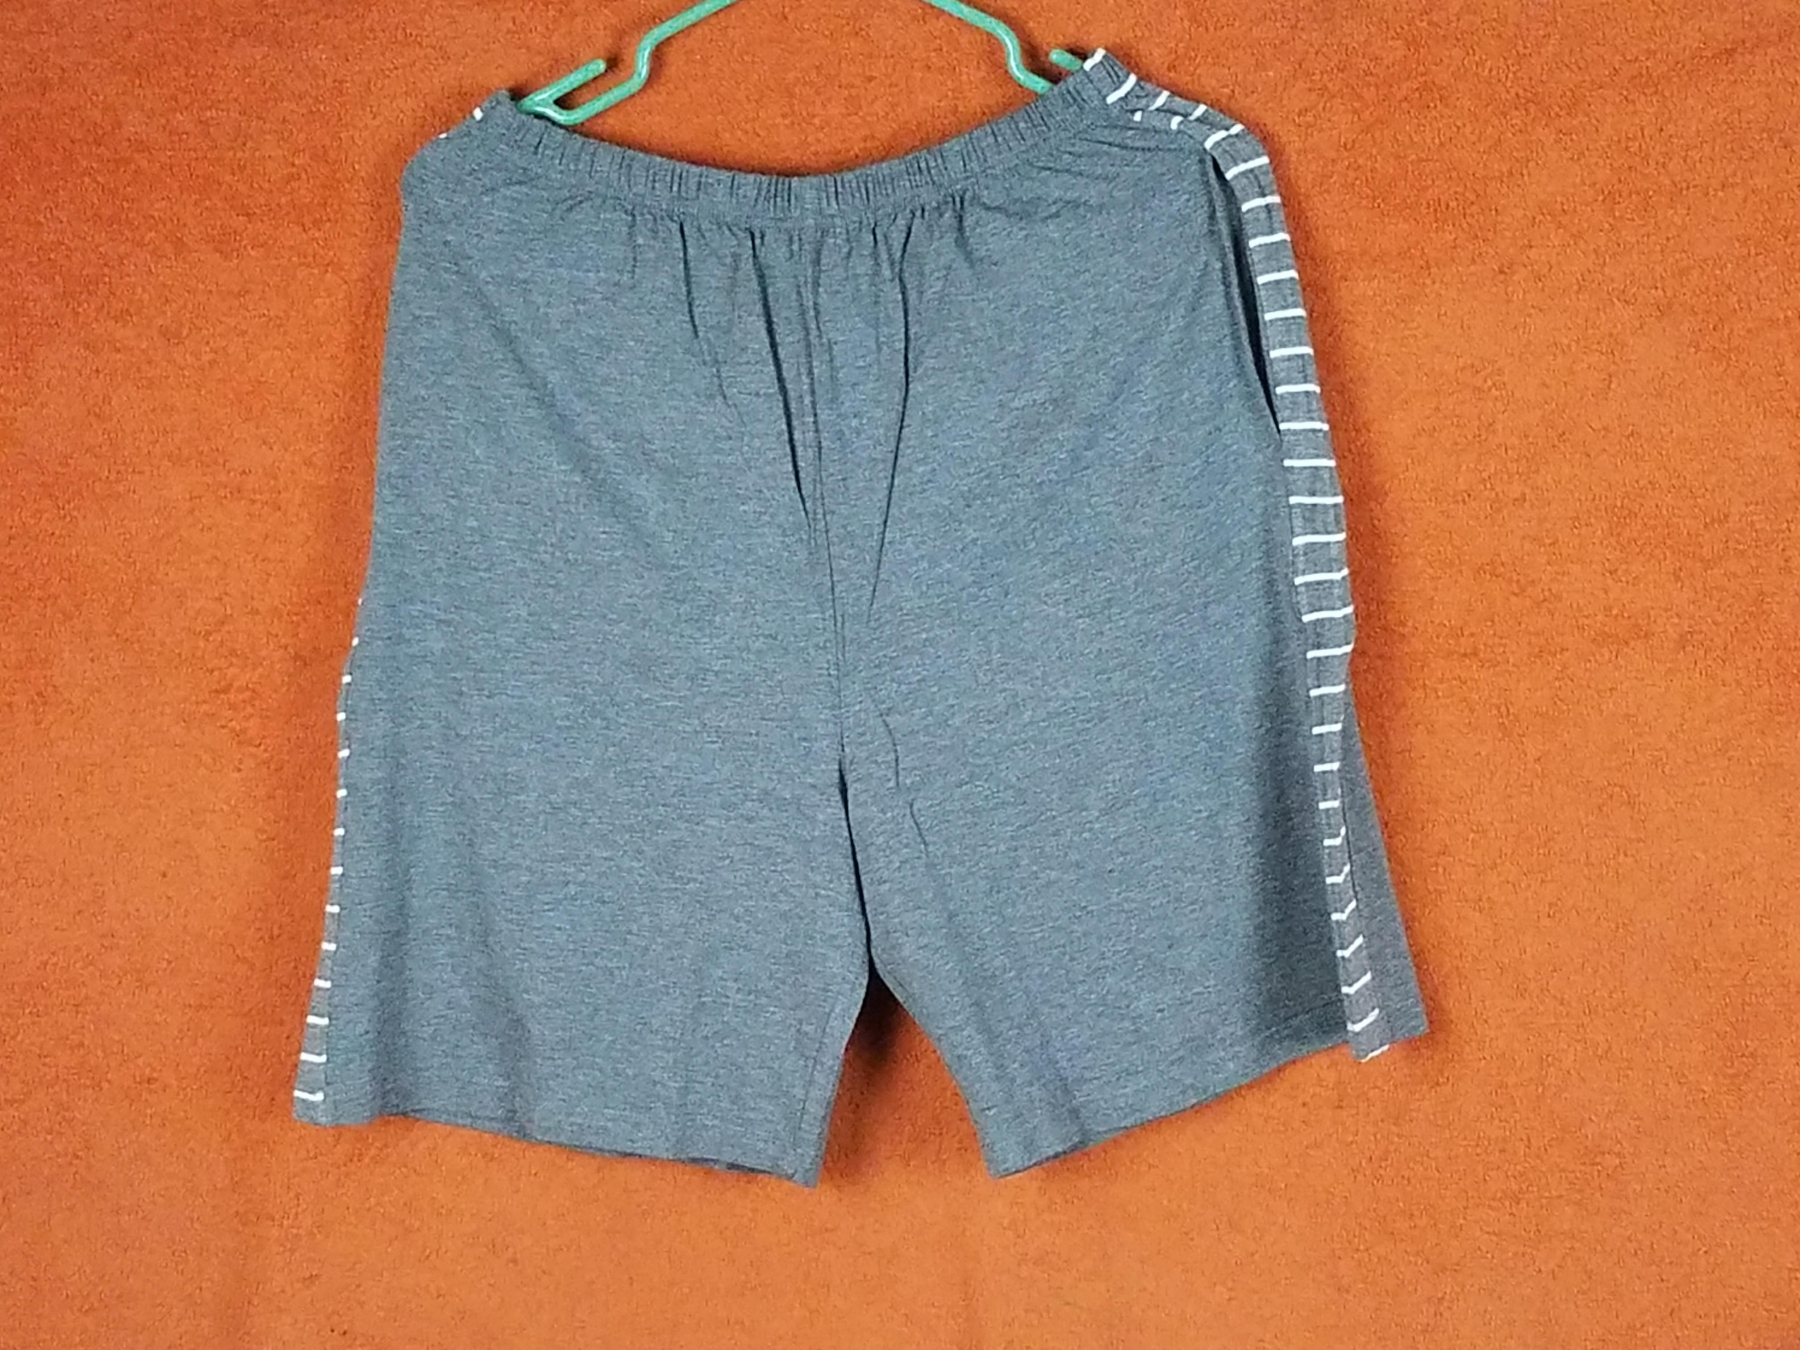 Shorts with short sleeved top striped pajama set is comfortable, breathable, & nice to lounge around or sleep in, but order a size up!